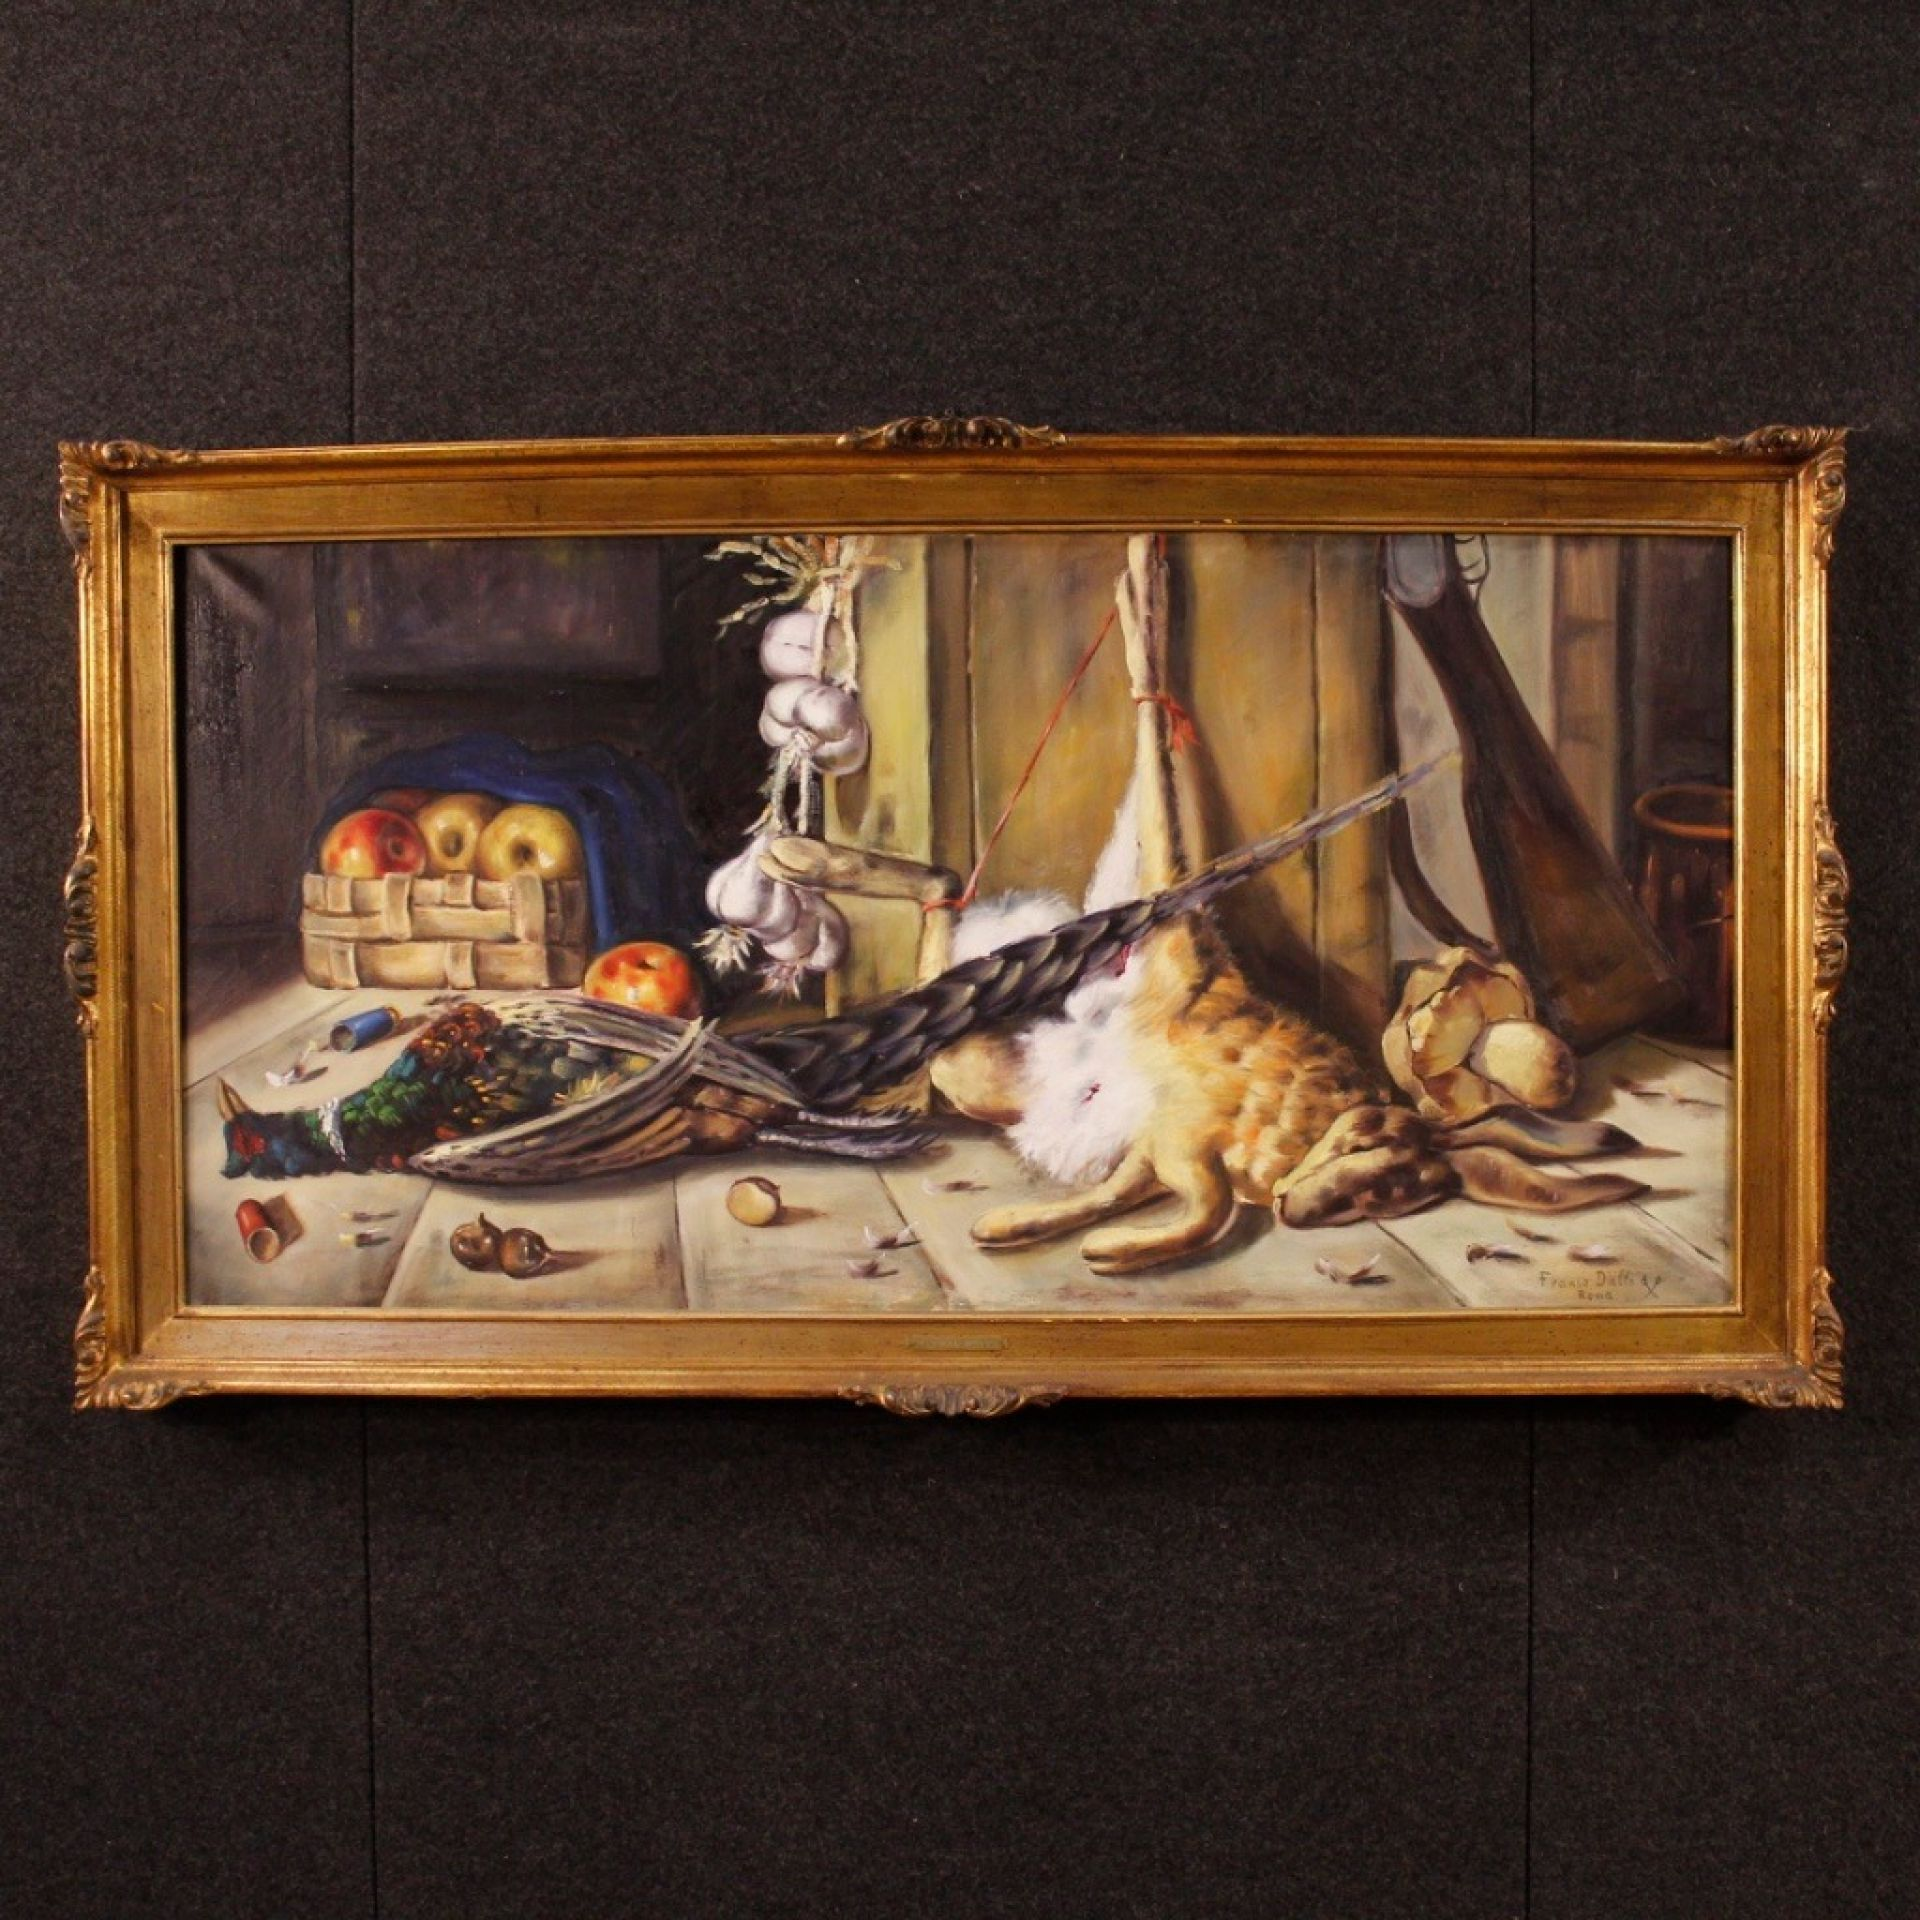 Franco Dalle Spade Signed 20th Century Oil on Canvas Italian Still Life Painting